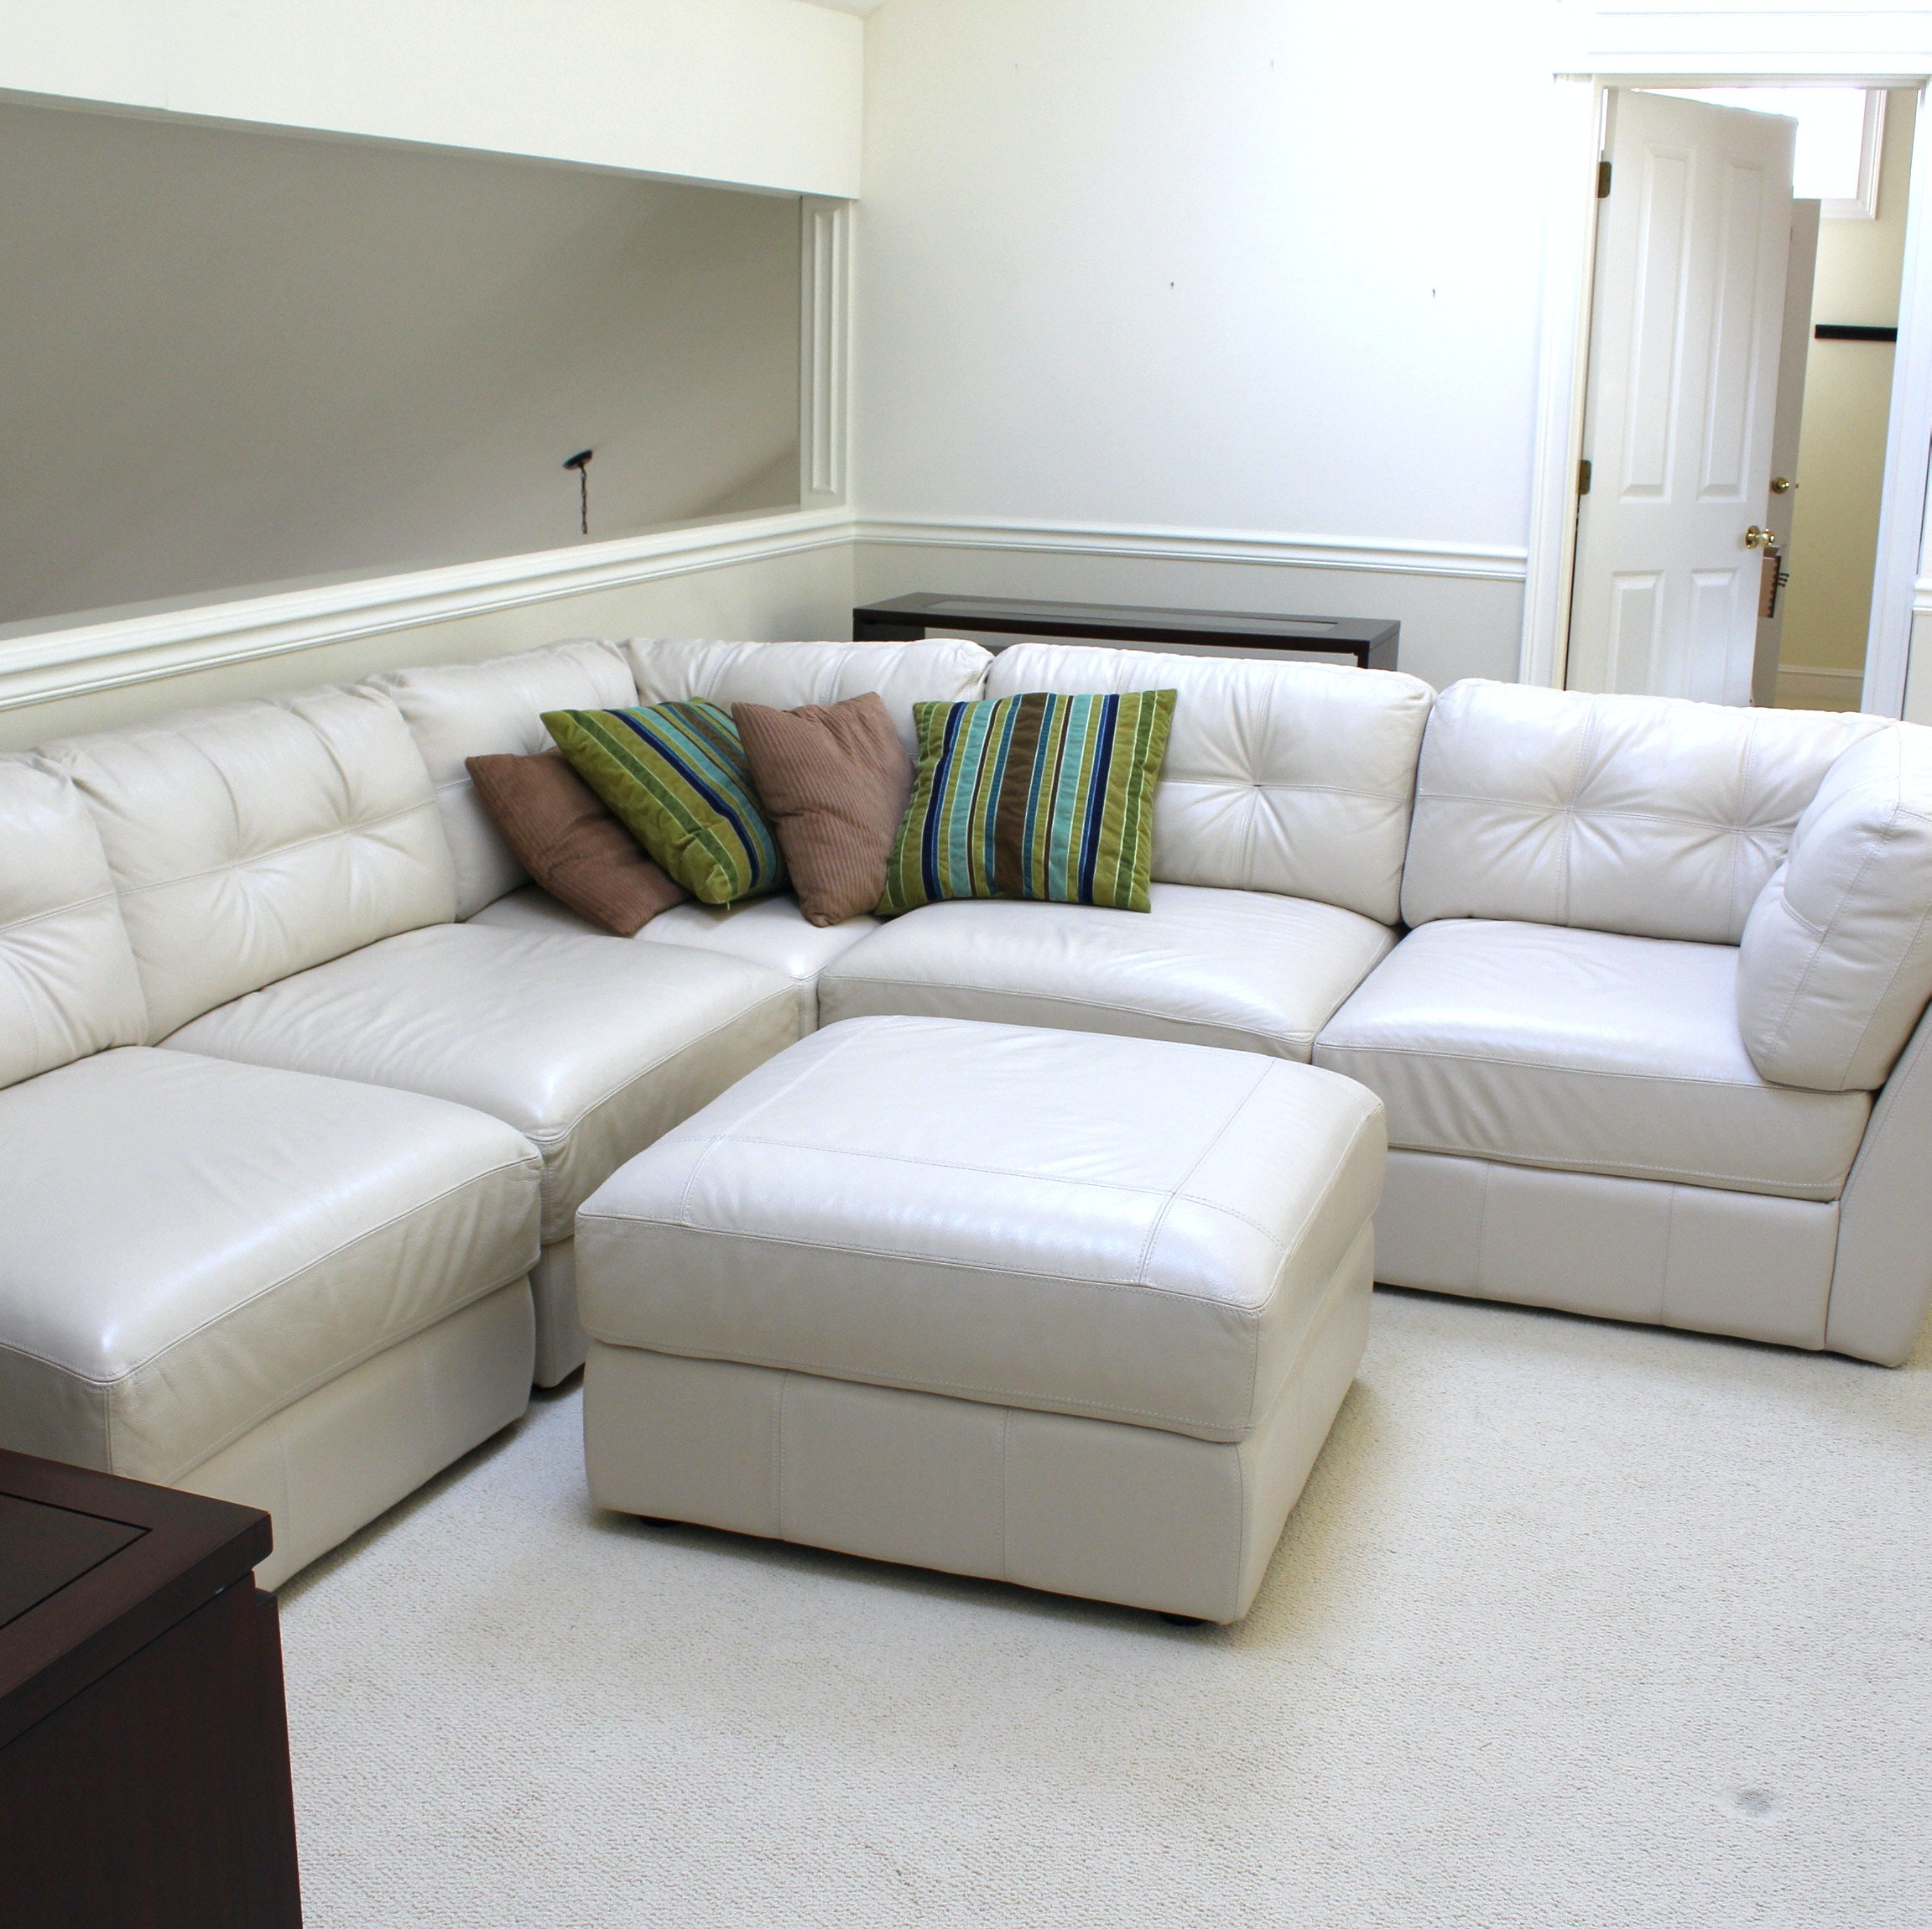 Italian Leather Sectional Sofa and Ottoman